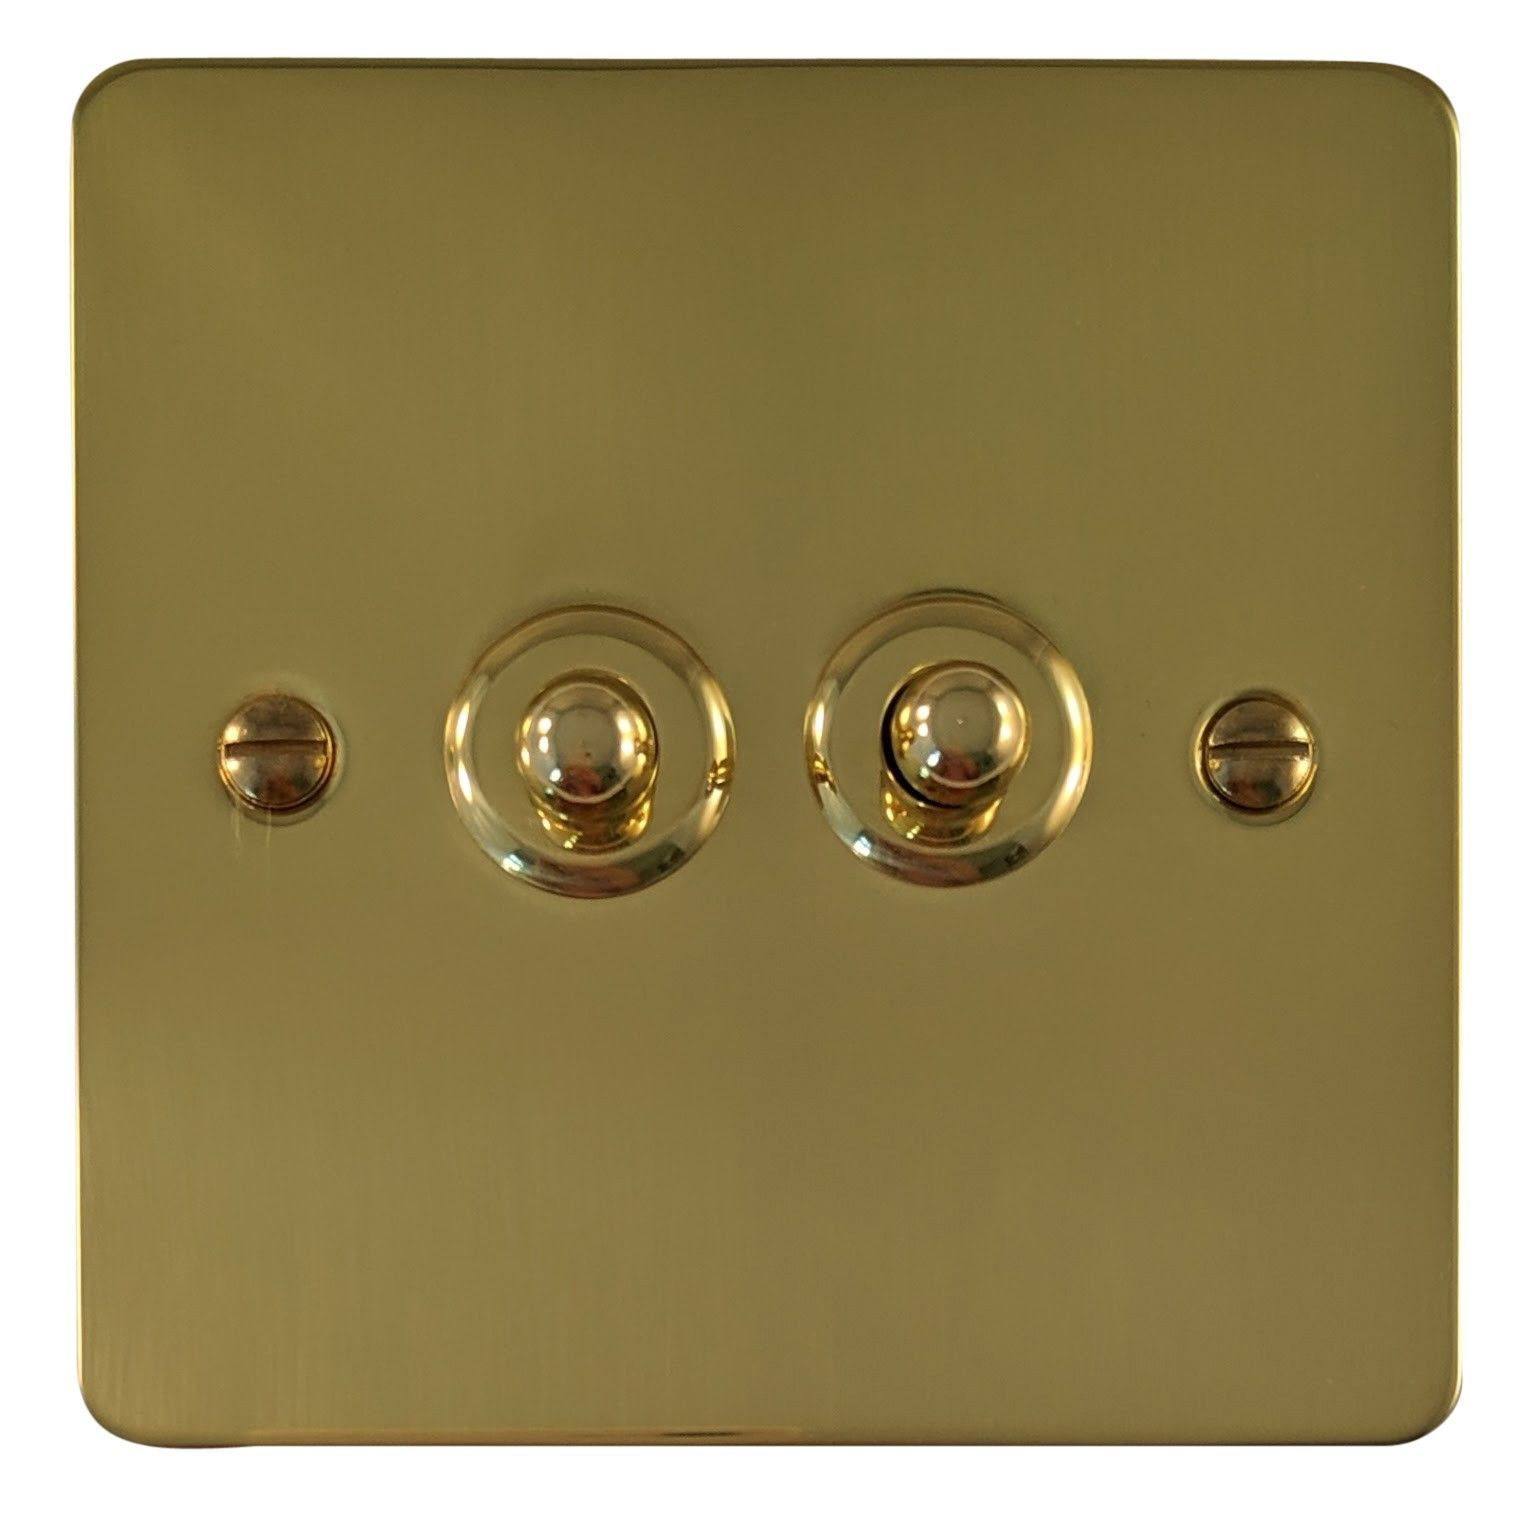 G&H FB282 Flat Plate Polished Brass 2 Gang 1 or 2 Way Toggle Light Switch